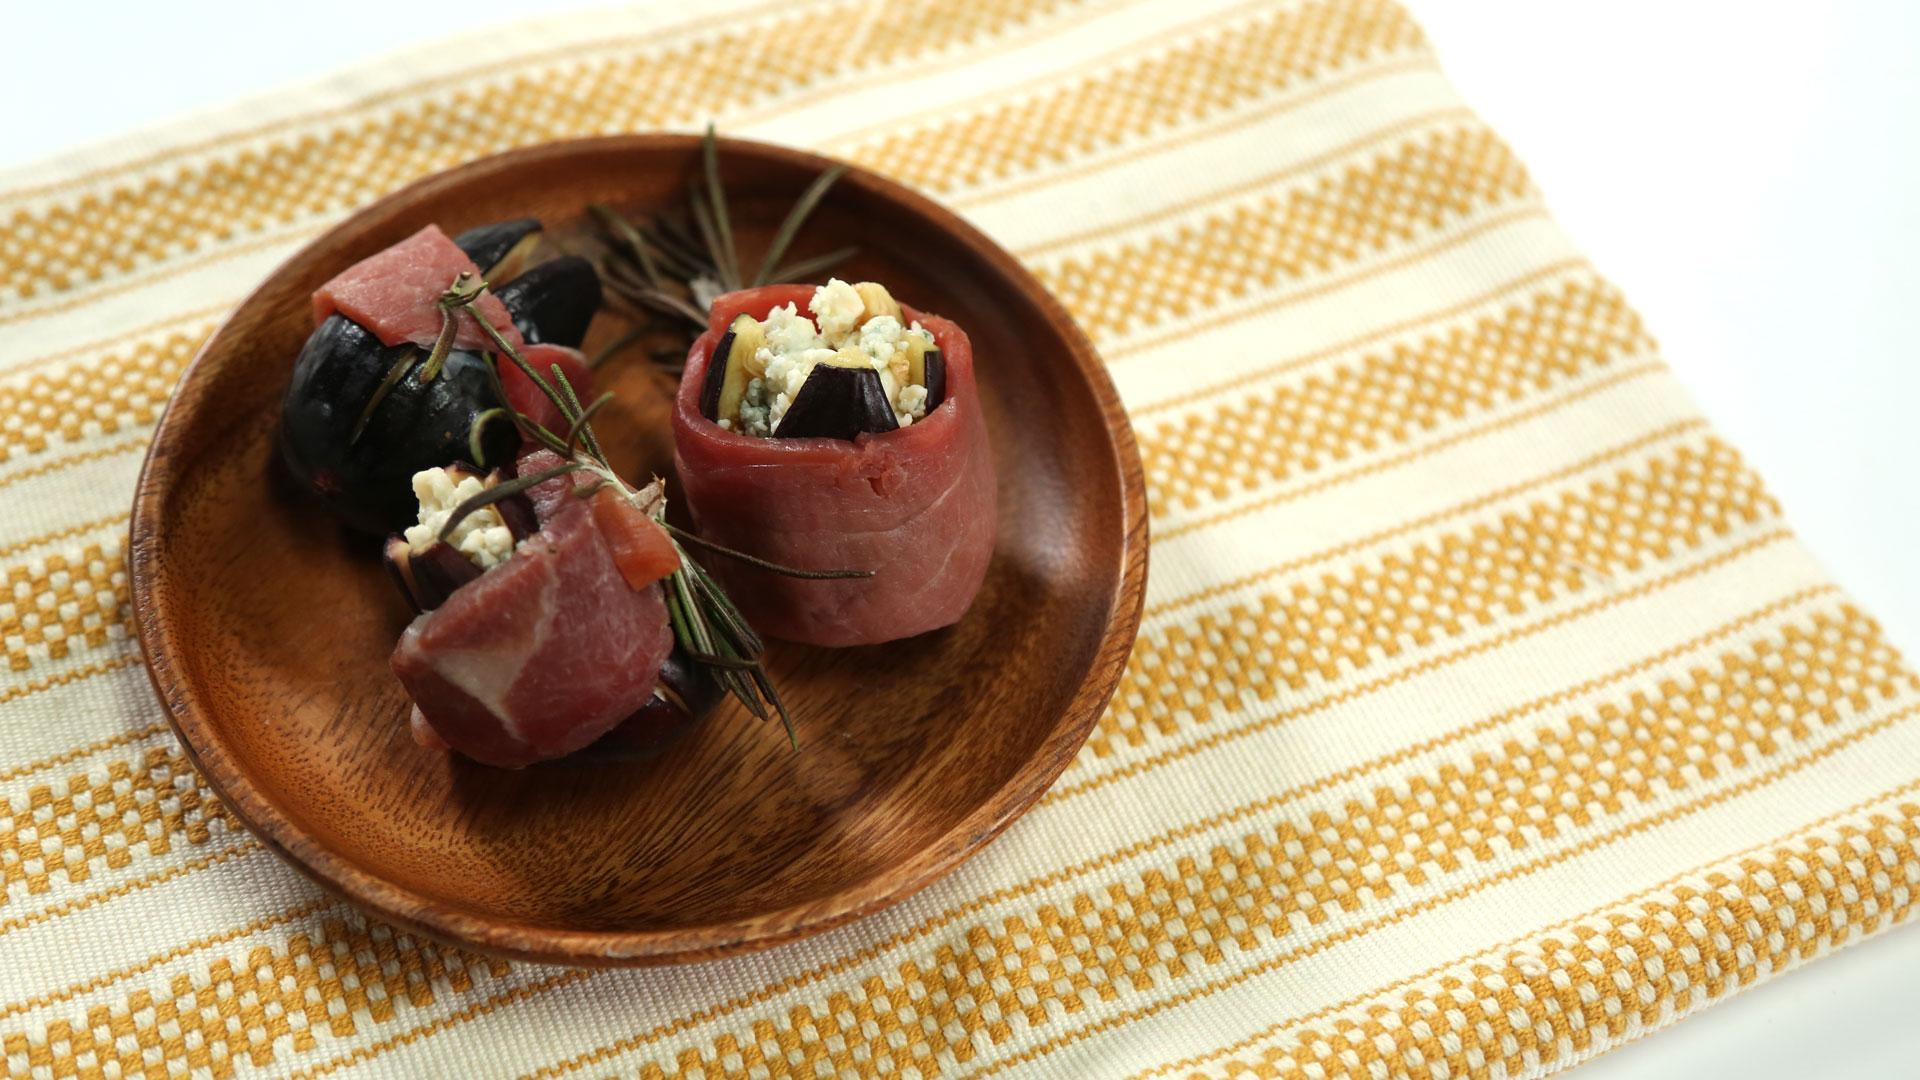 How to Make Ham-Wrapped Stuffed Figs